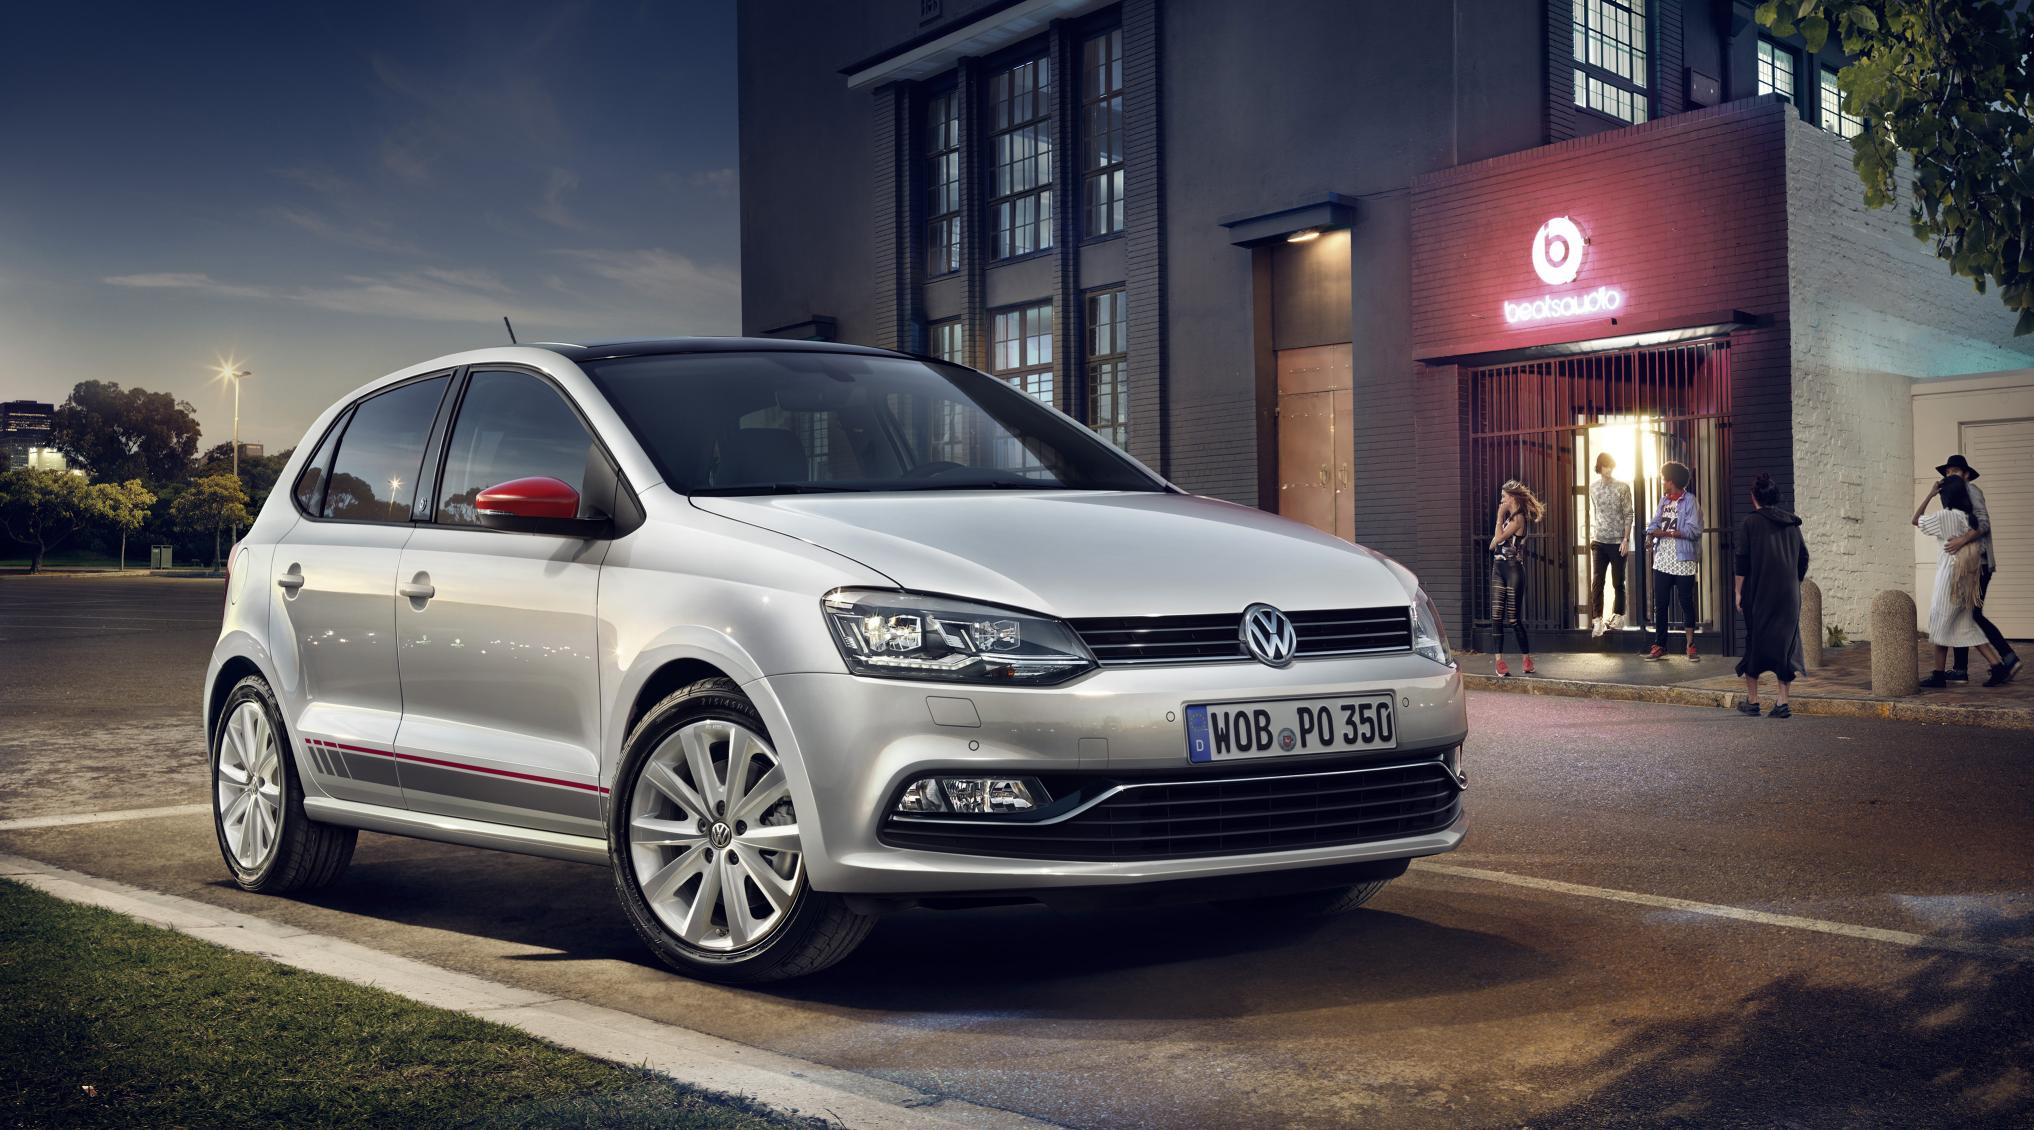 Volkswagen Polo Beats 1